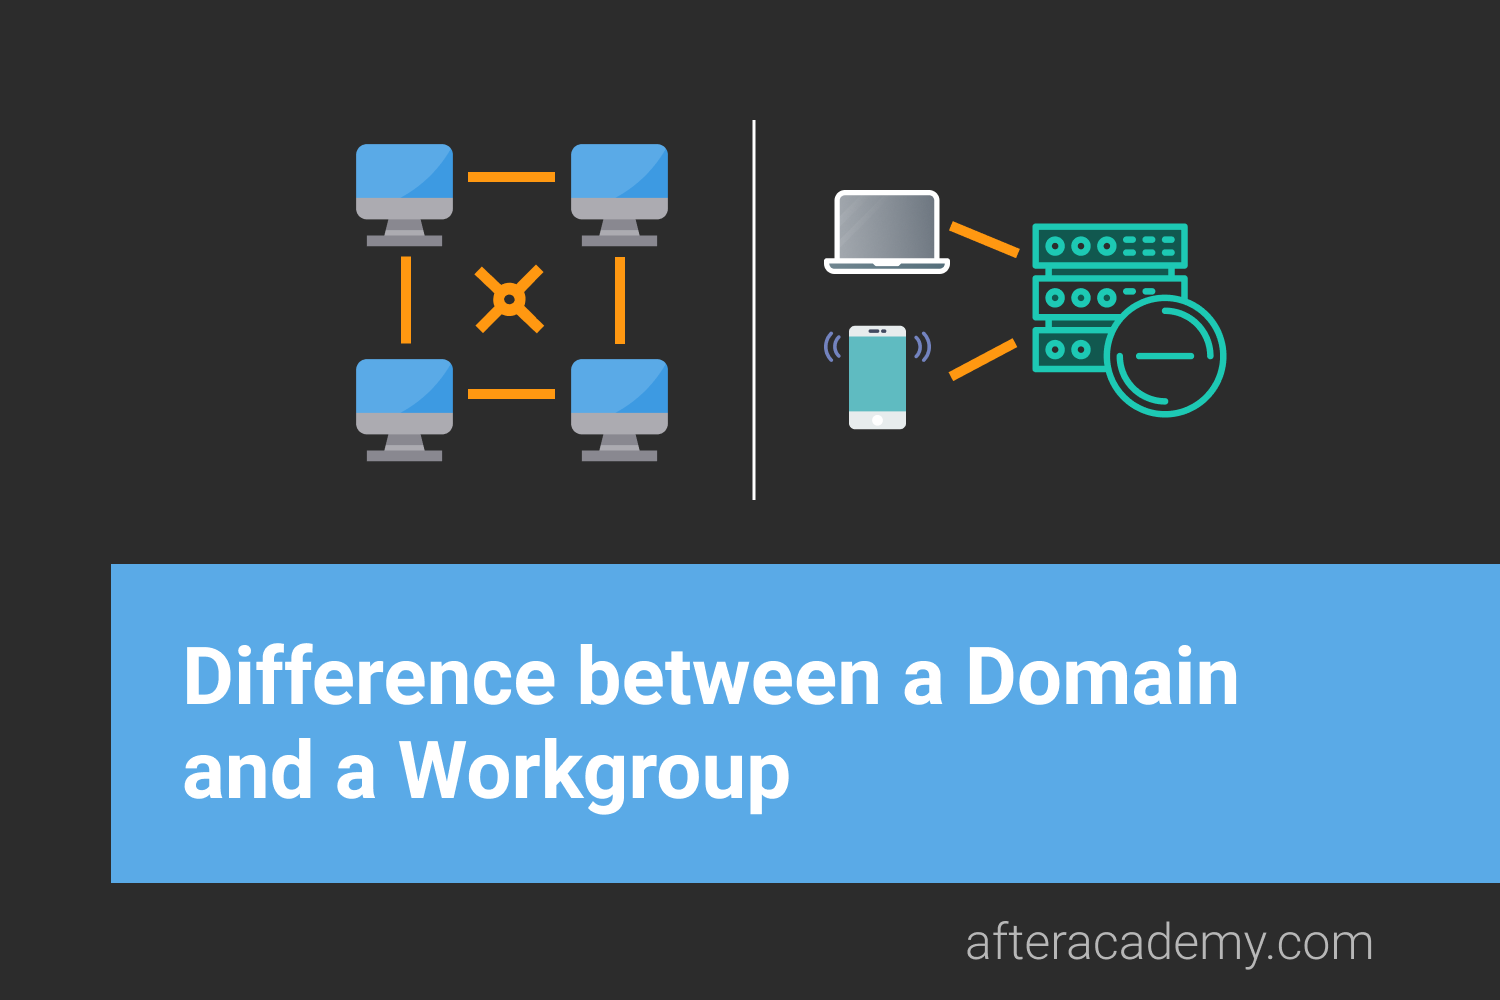 Difference between a Domain and a Workgroup